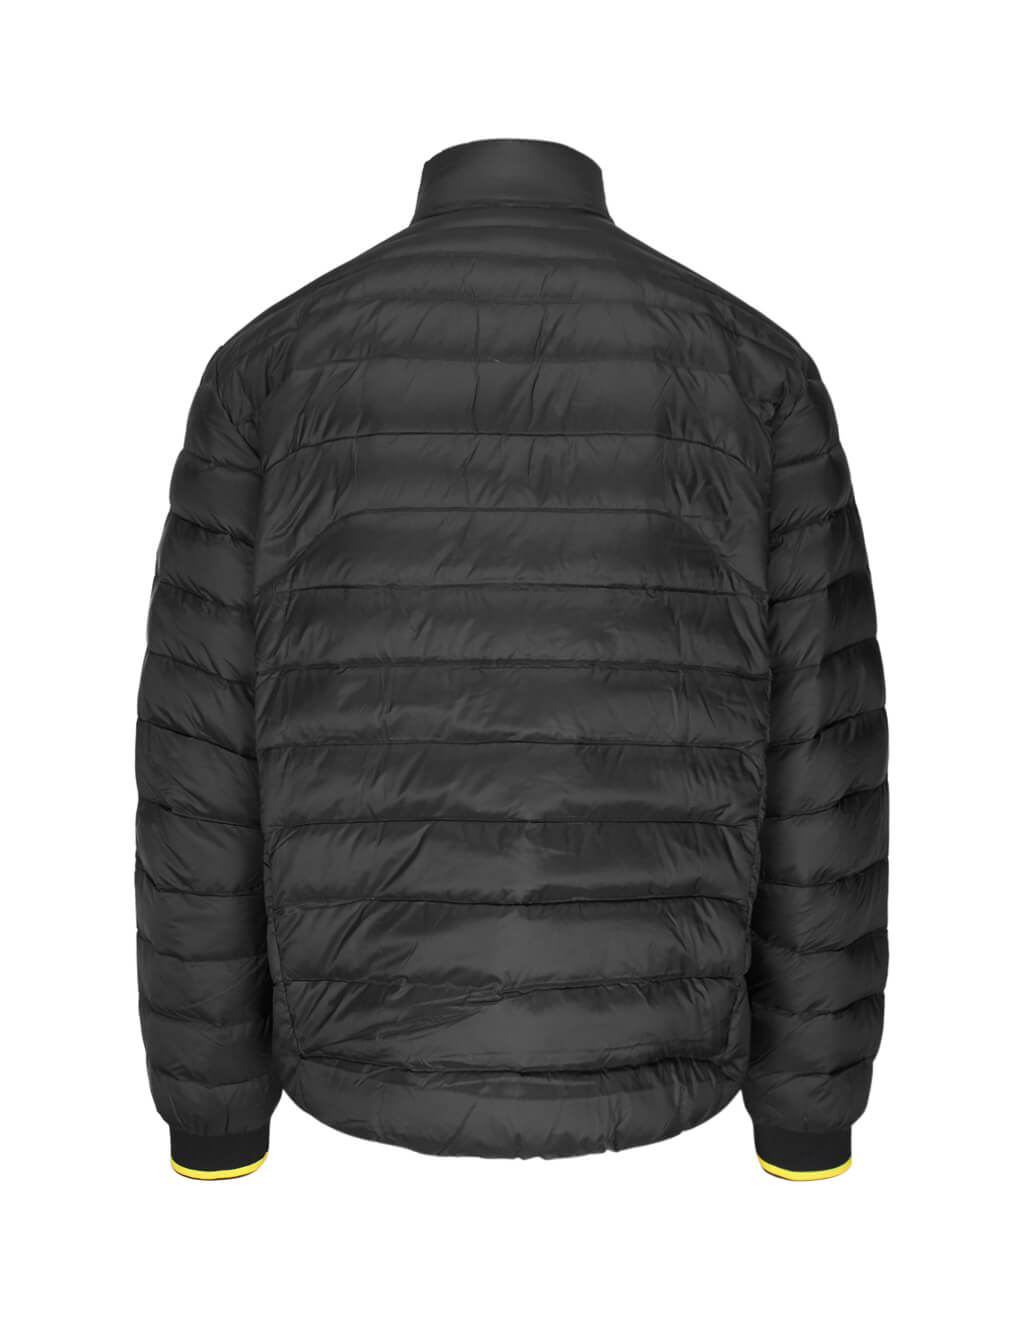 86713ce78 Polo Ralph Lauren Packable Quilted Down Jacket   GIULIOFASHION.COM ...